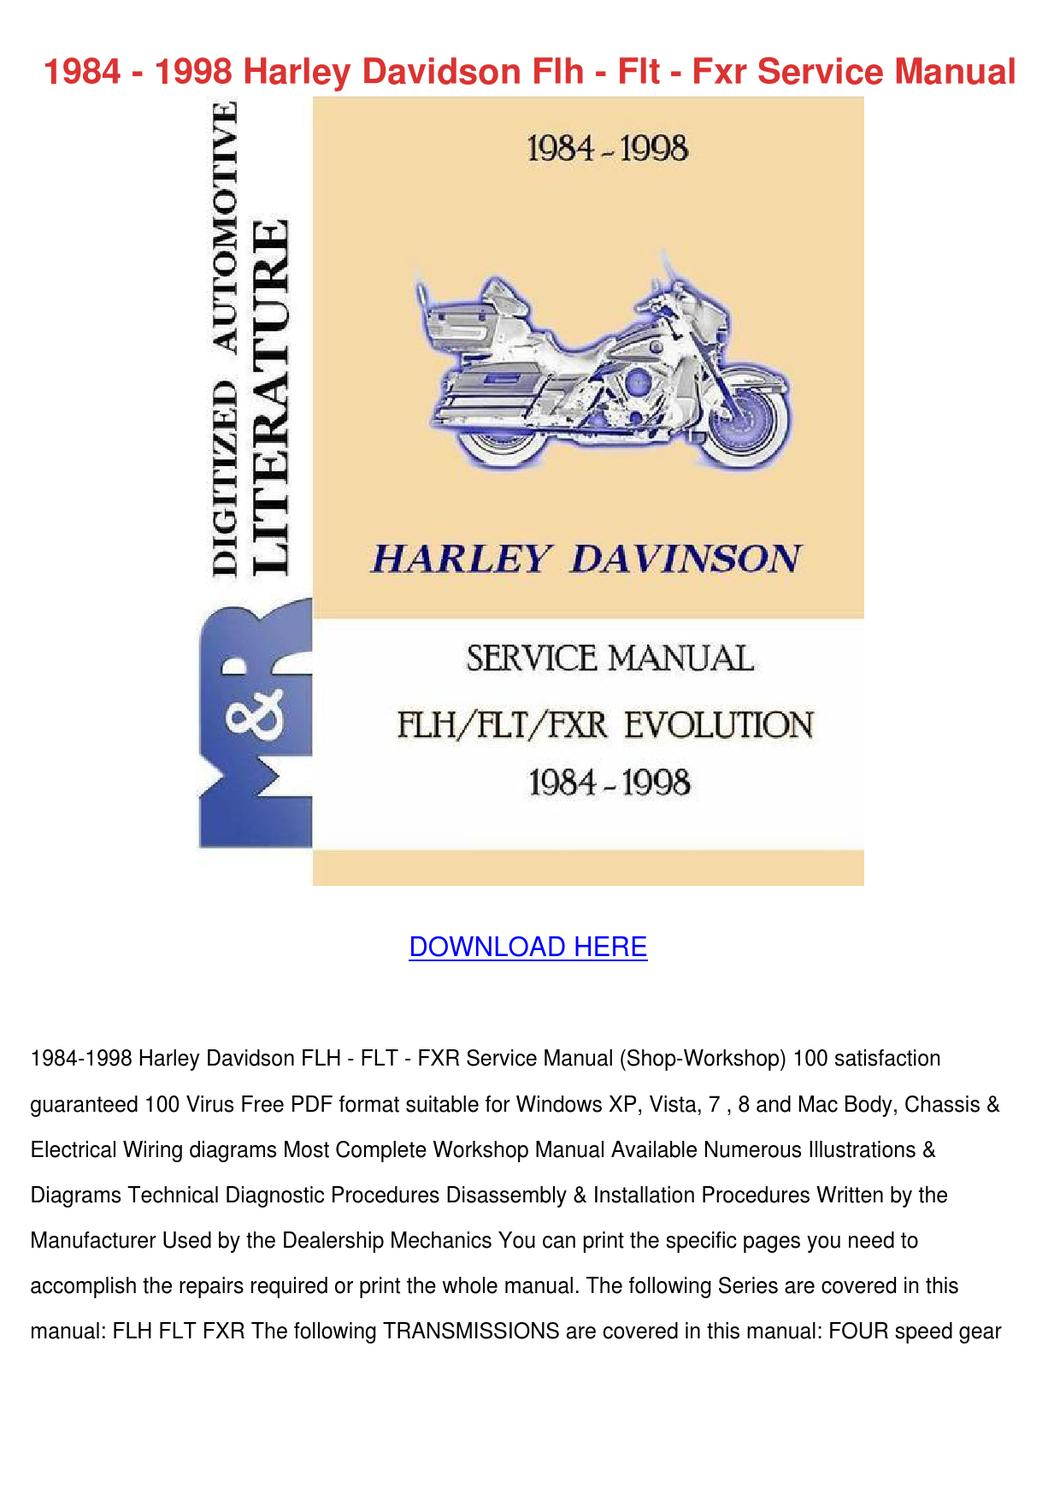 Free Harley Davidson Owners Manual Pdf